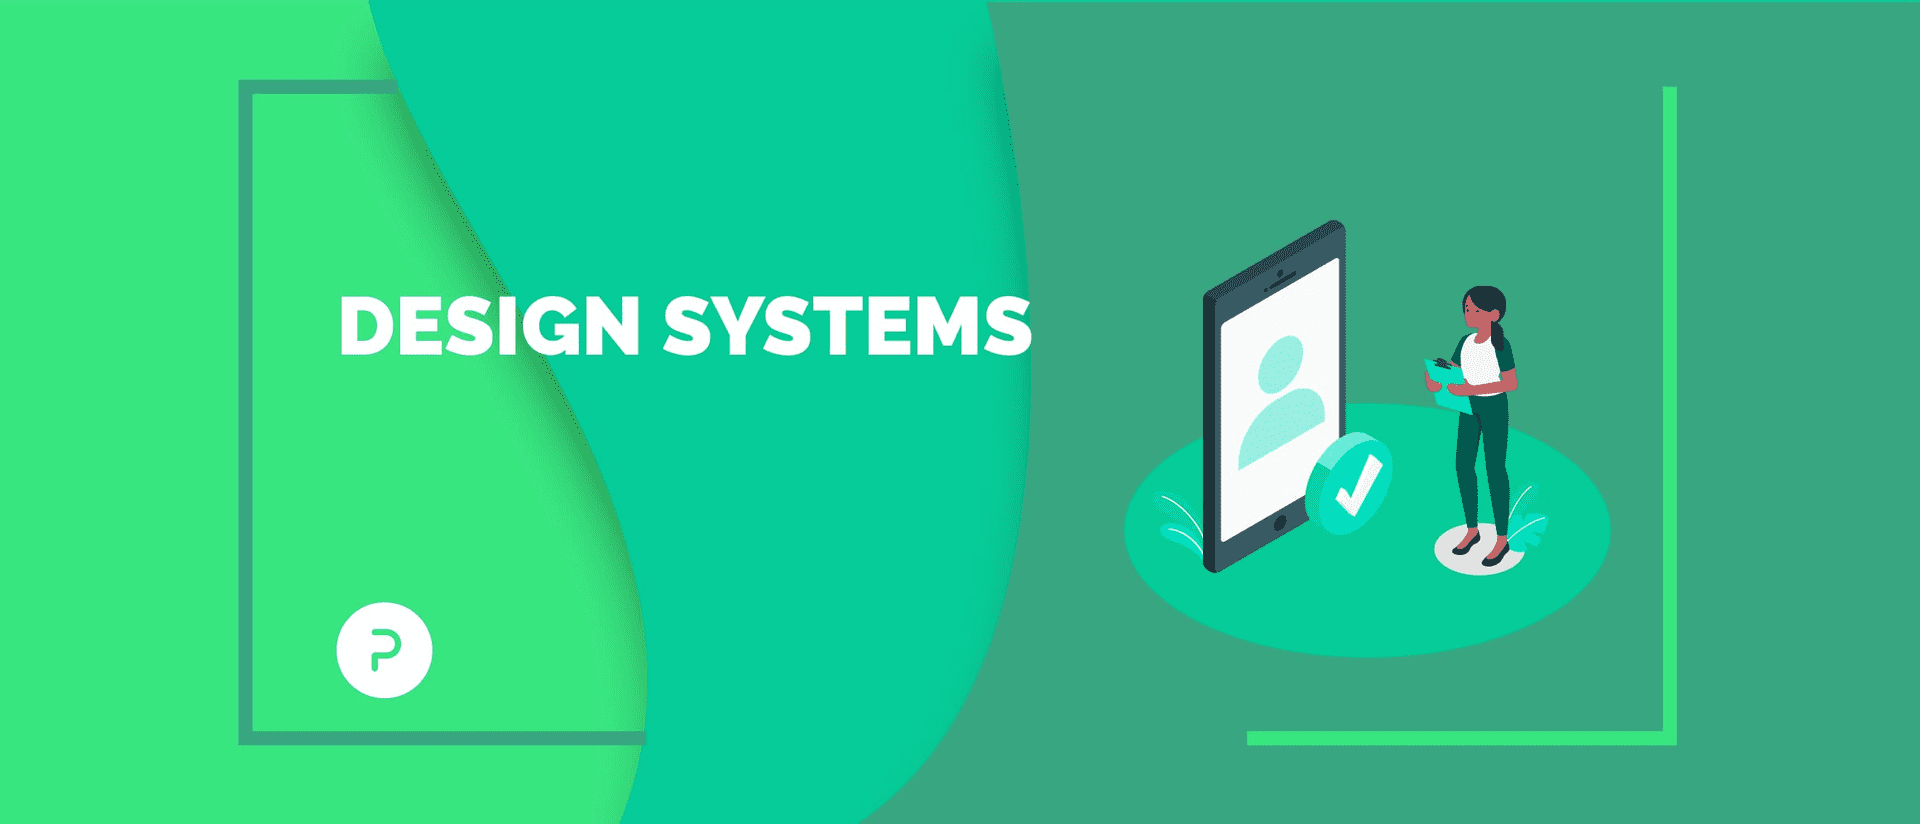 What No One Tells You About Design Systems